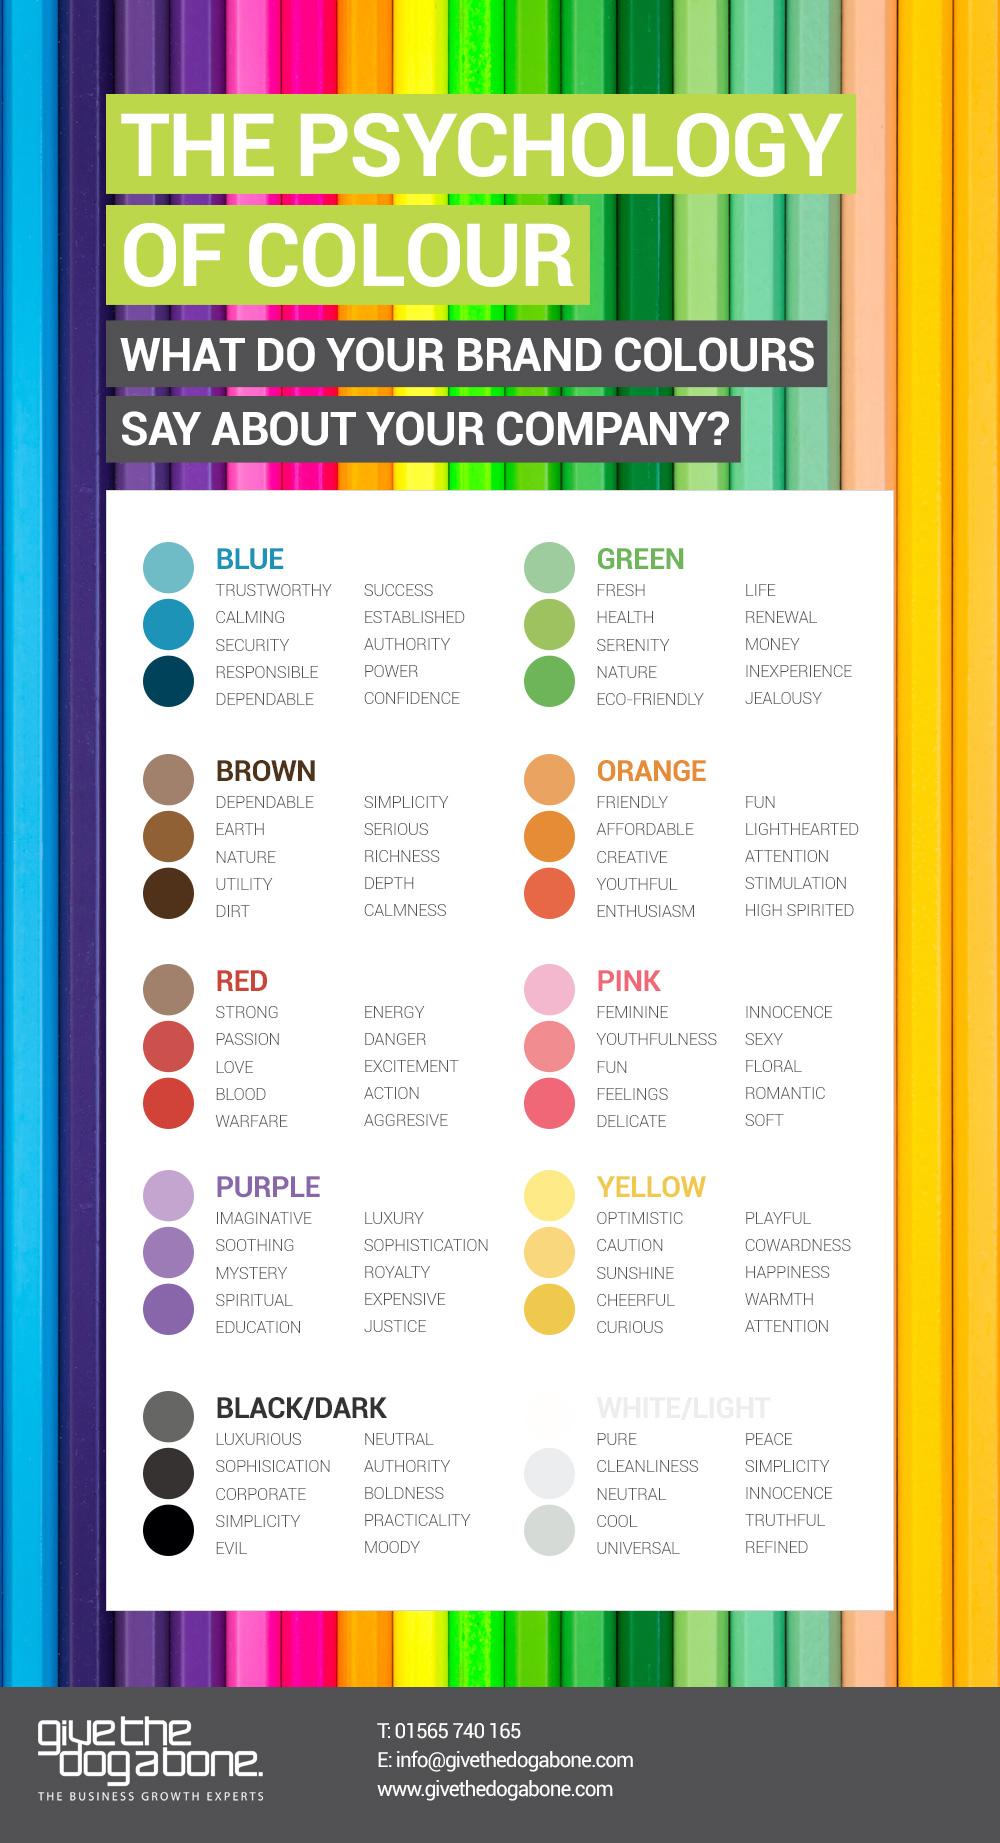 What Do Your Brand Colours Say About Your Company? – Give